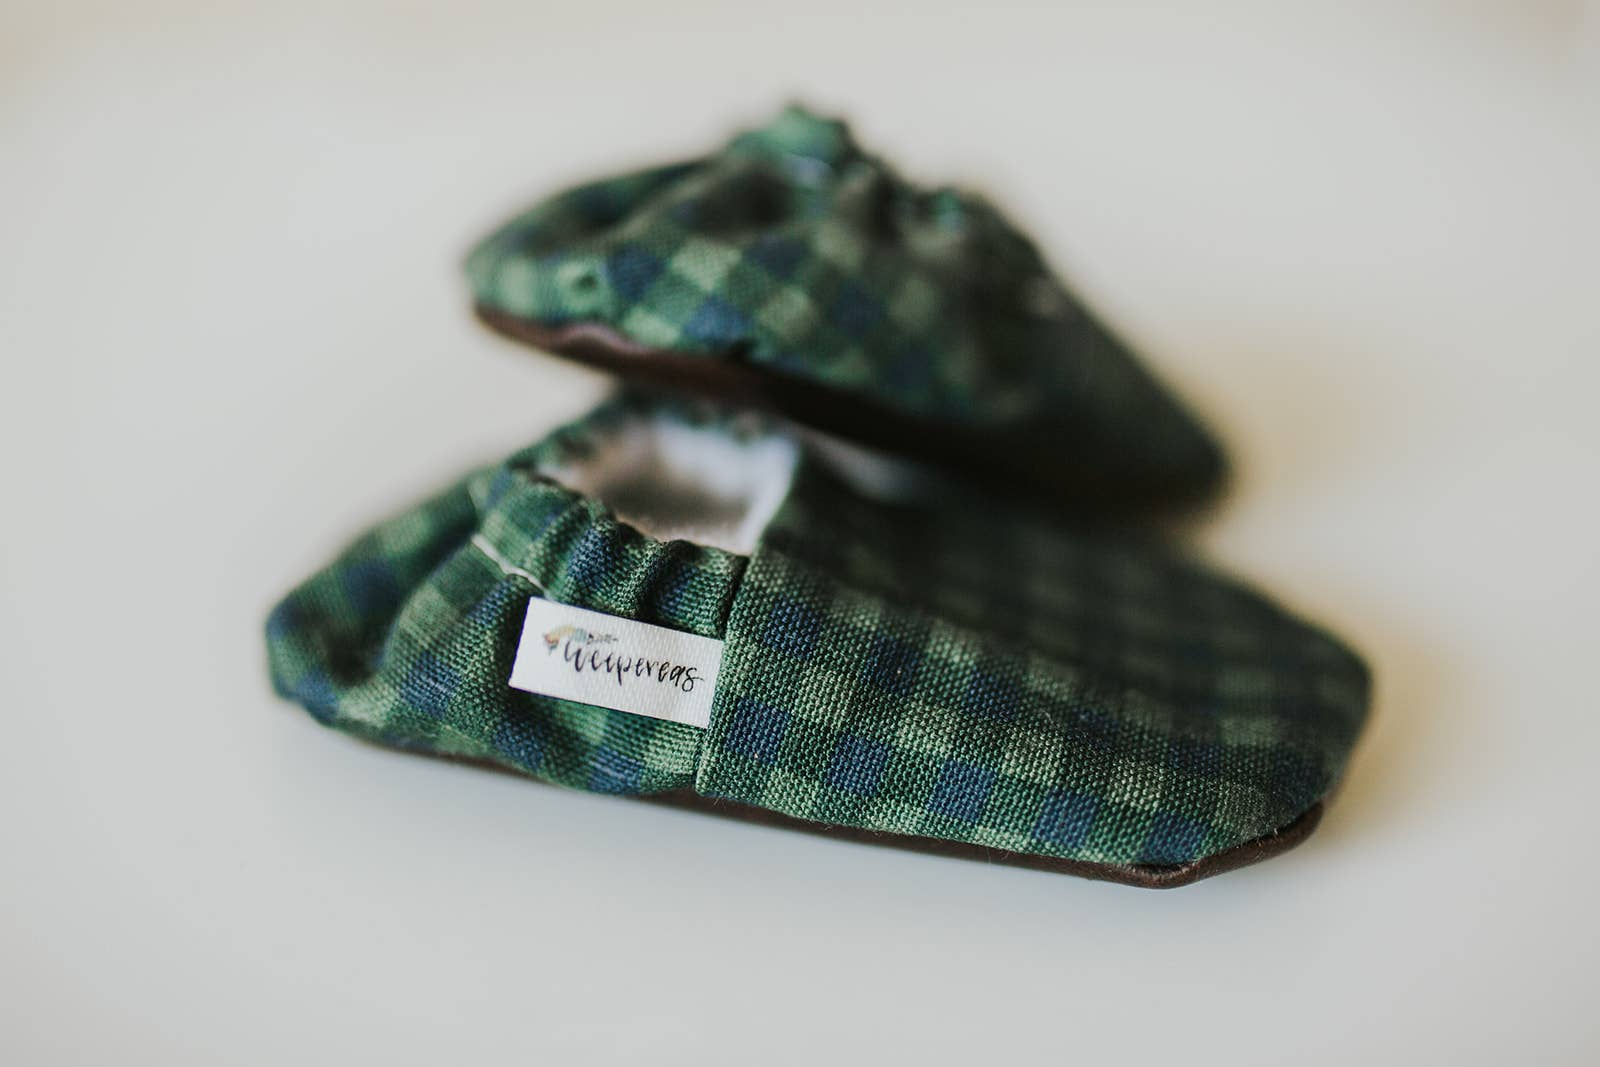 Green Plaid Organic Baby Shoes, by Weepereas - Crunch Natural Parenting is where to buy